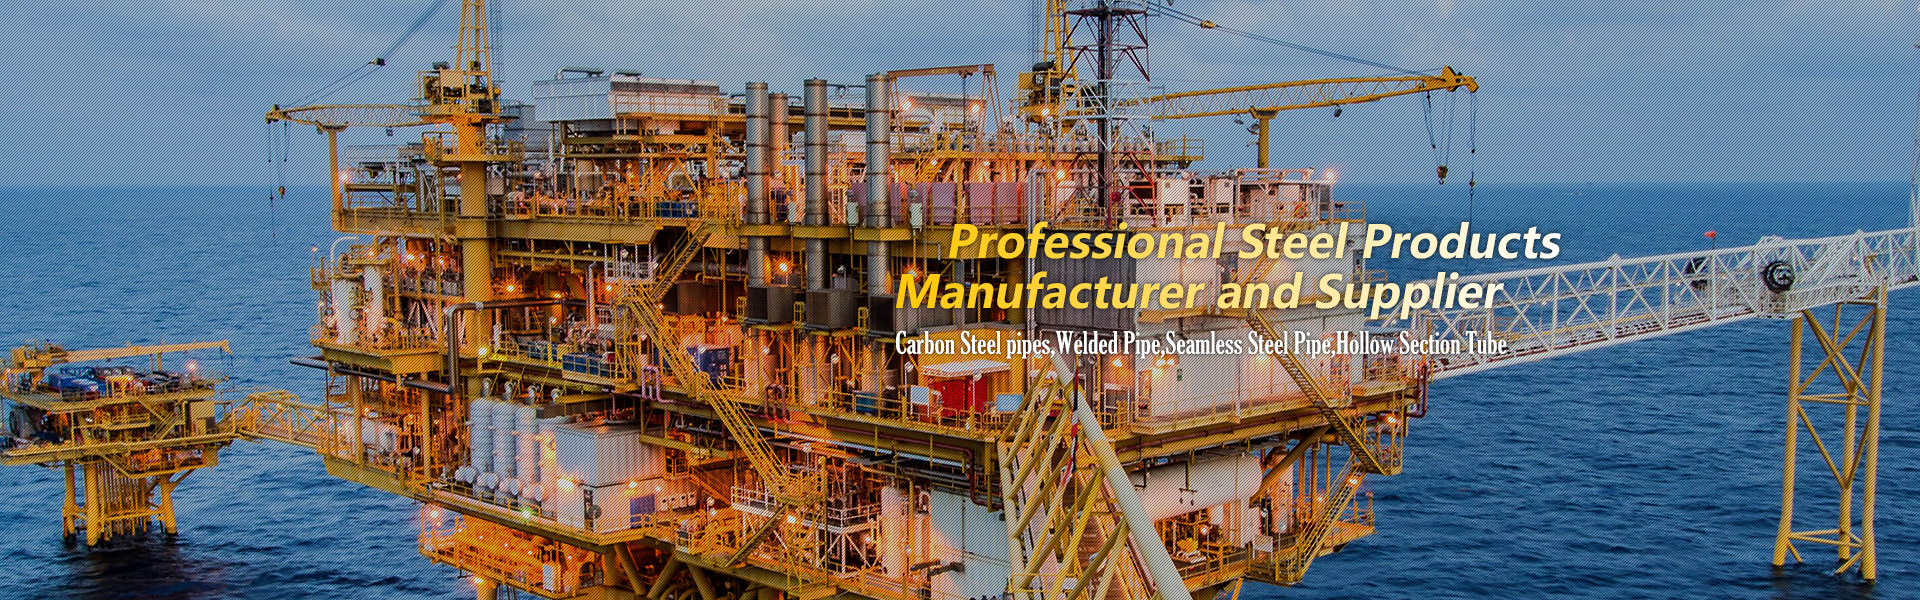 Joho is china professional steel products stockiest manufacturer and supplier.We can produce welded pipe,seamless steel pipe,hollow section tube, oil tube & casing, according to your requirements.